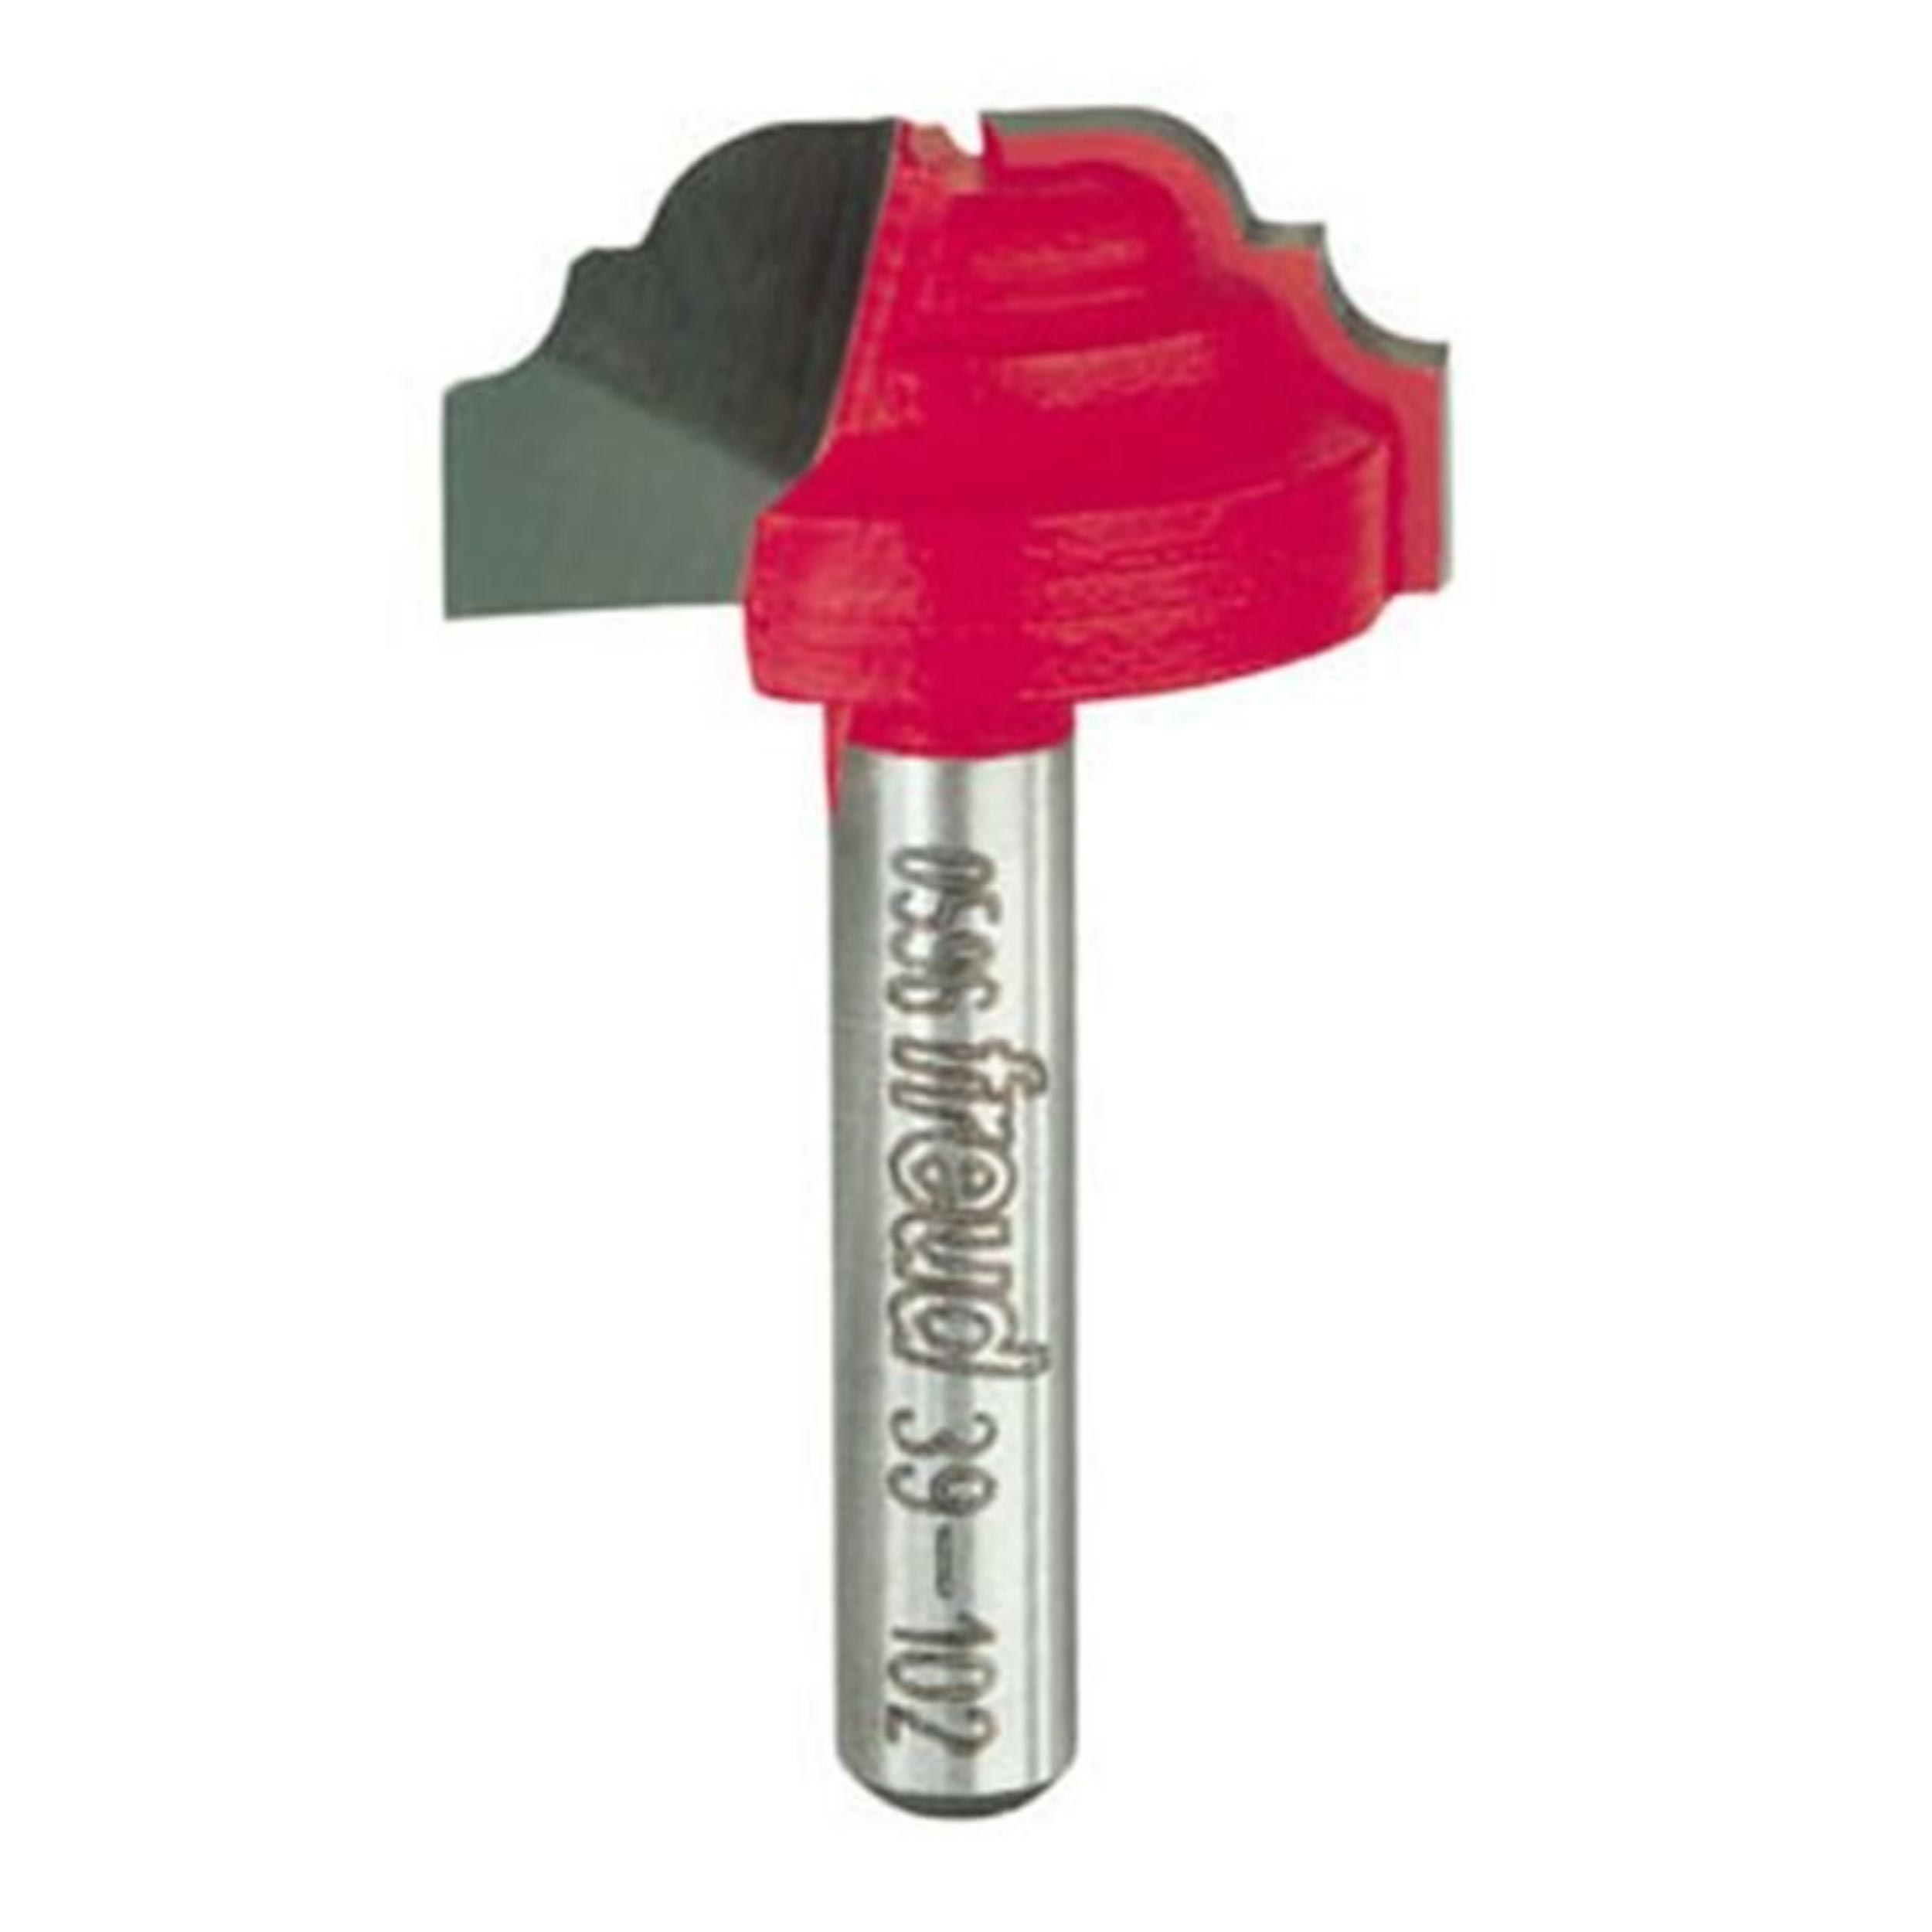 39-102 Cove And Bead Groove Router Bit 1/4